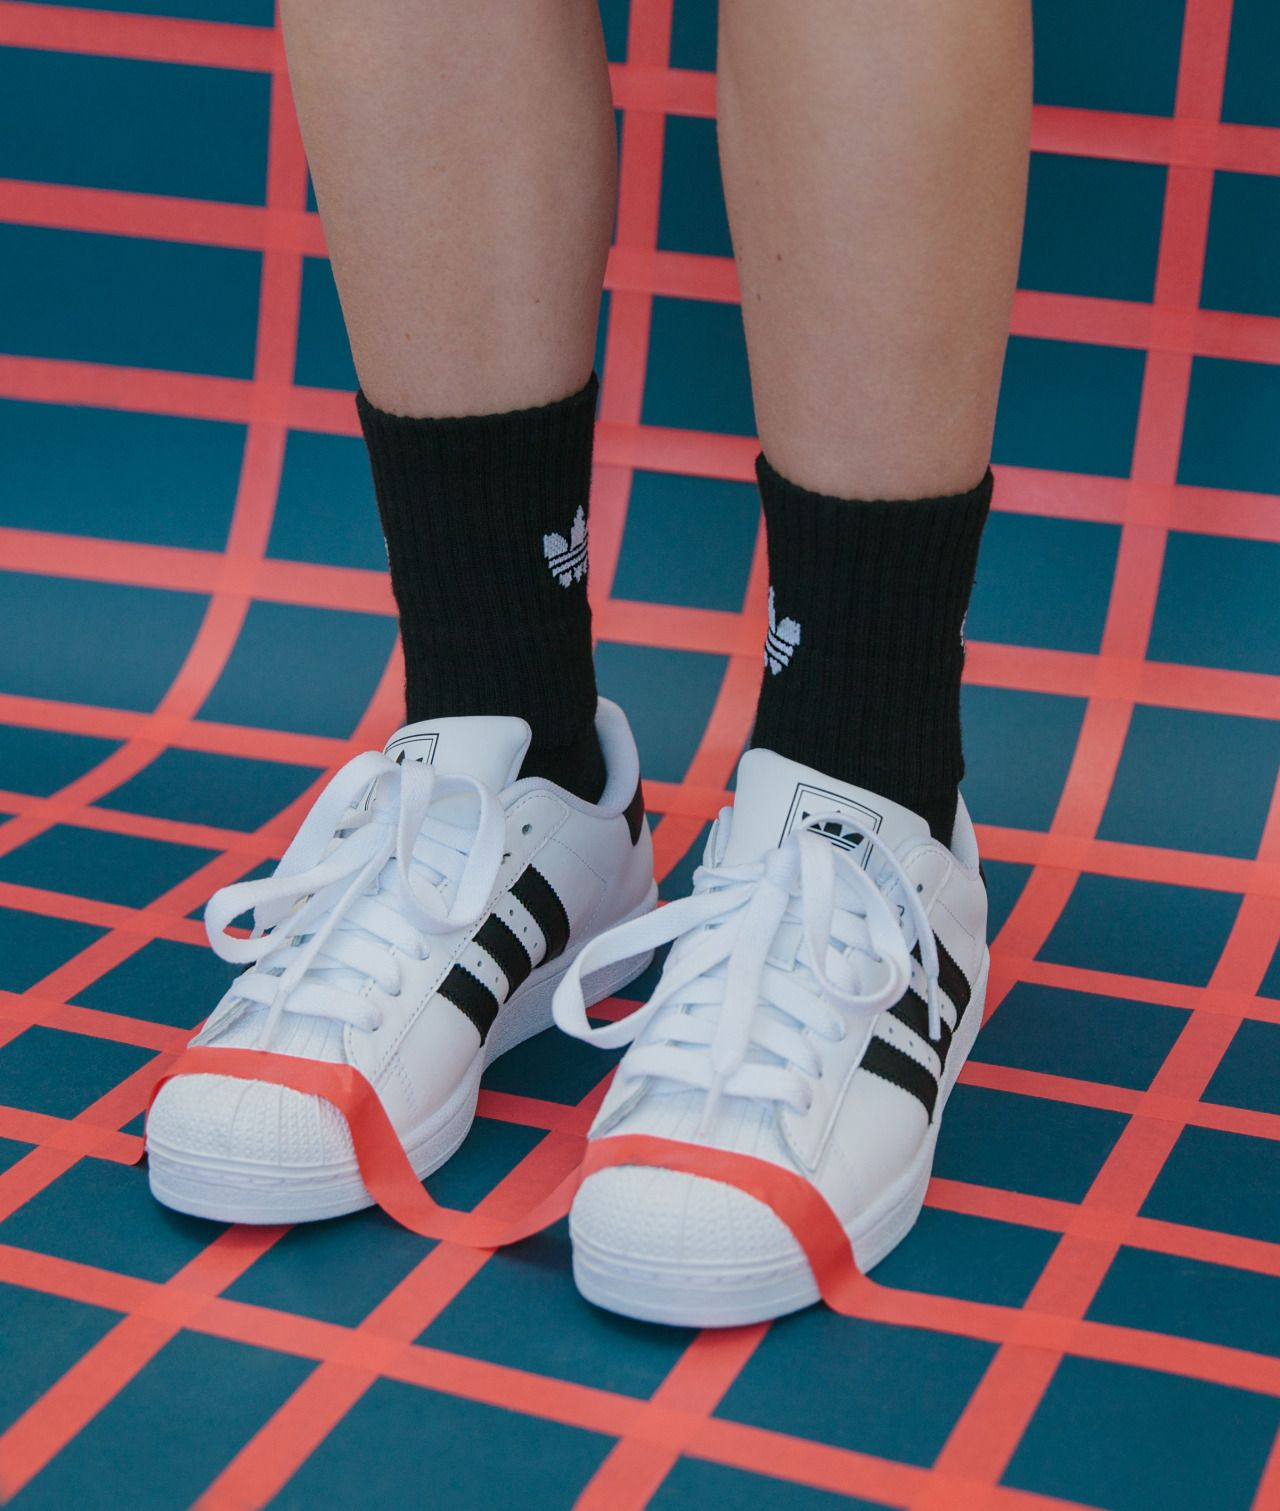 Photographer Amanda Jasnowski x Adidas.What a fun project!